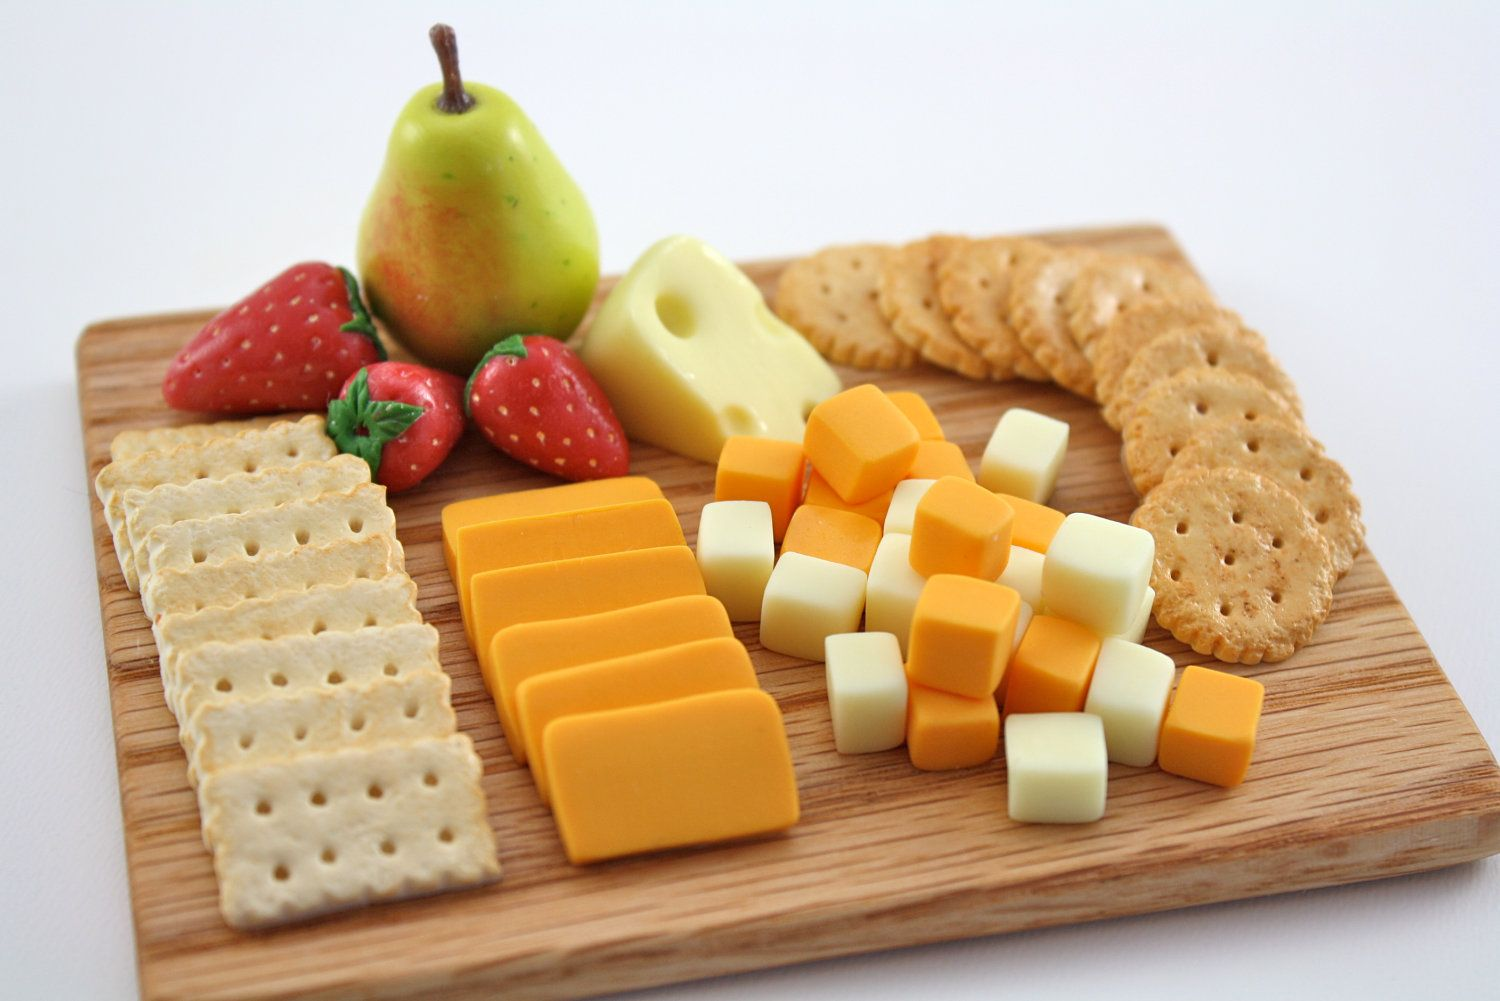 cheese tray - fruit not that great but cheese and crackers ...